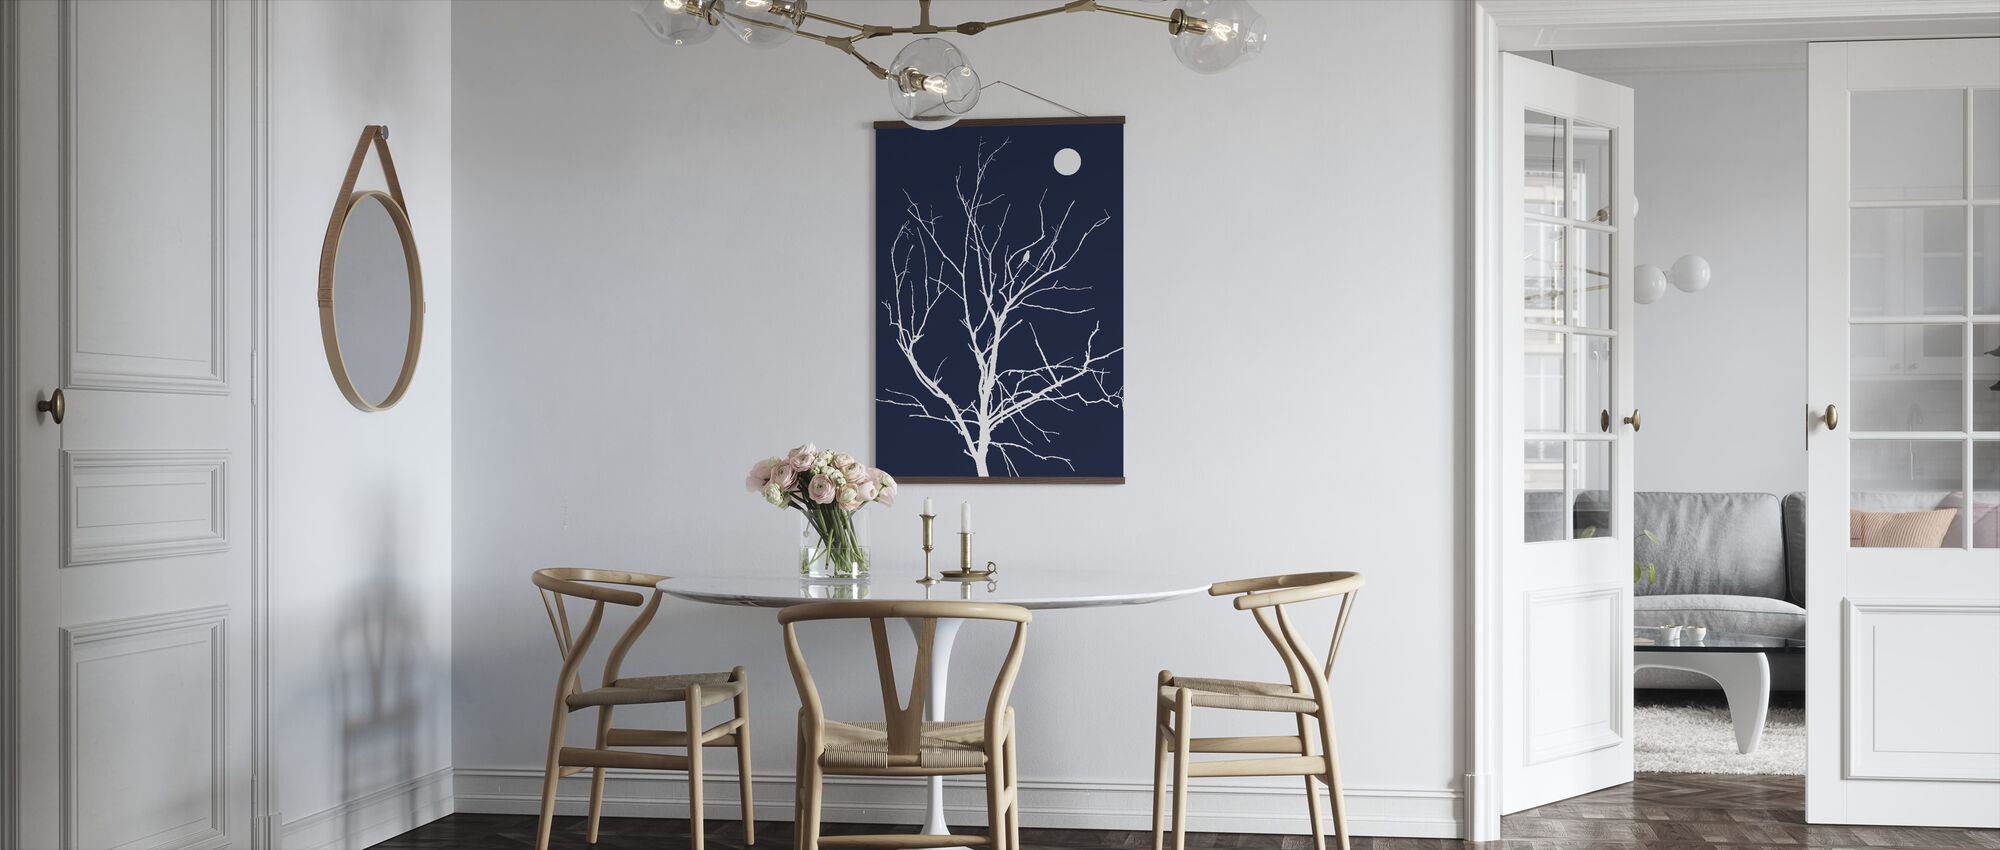 Lonely Bird Night Moon - Poster - Kitchen